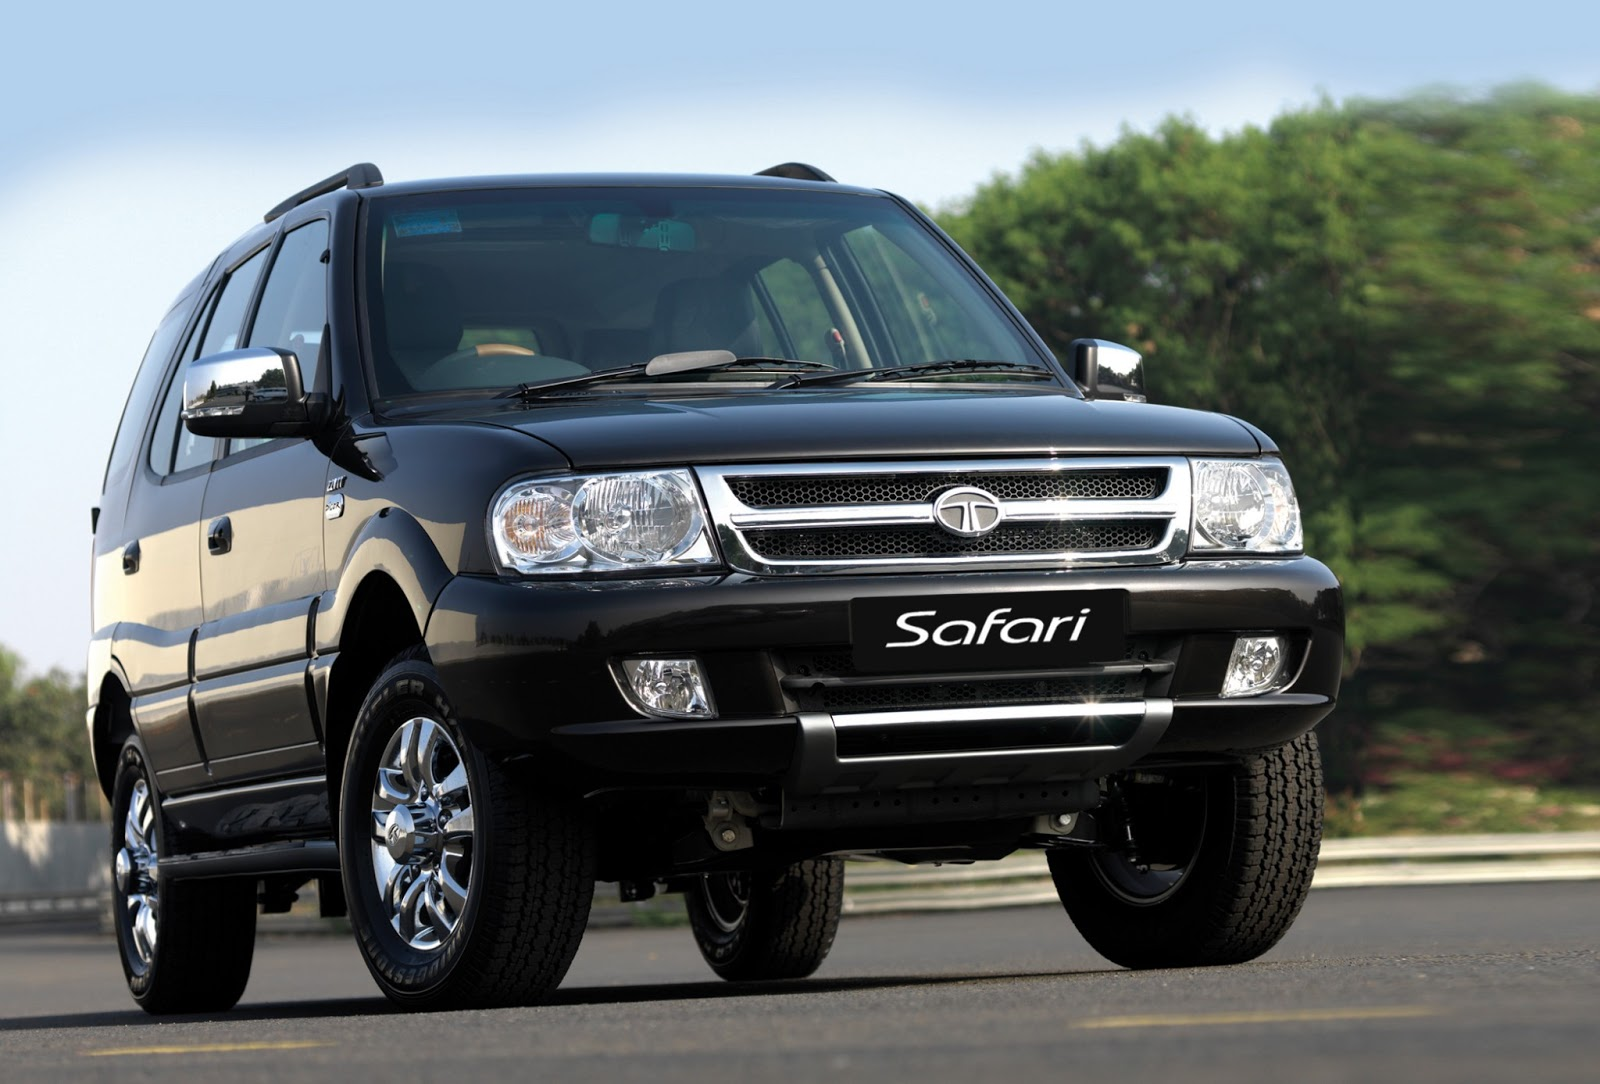 4x4 Bmw X7 >> Top Cars Zone: Tata Safari Black Car Picture